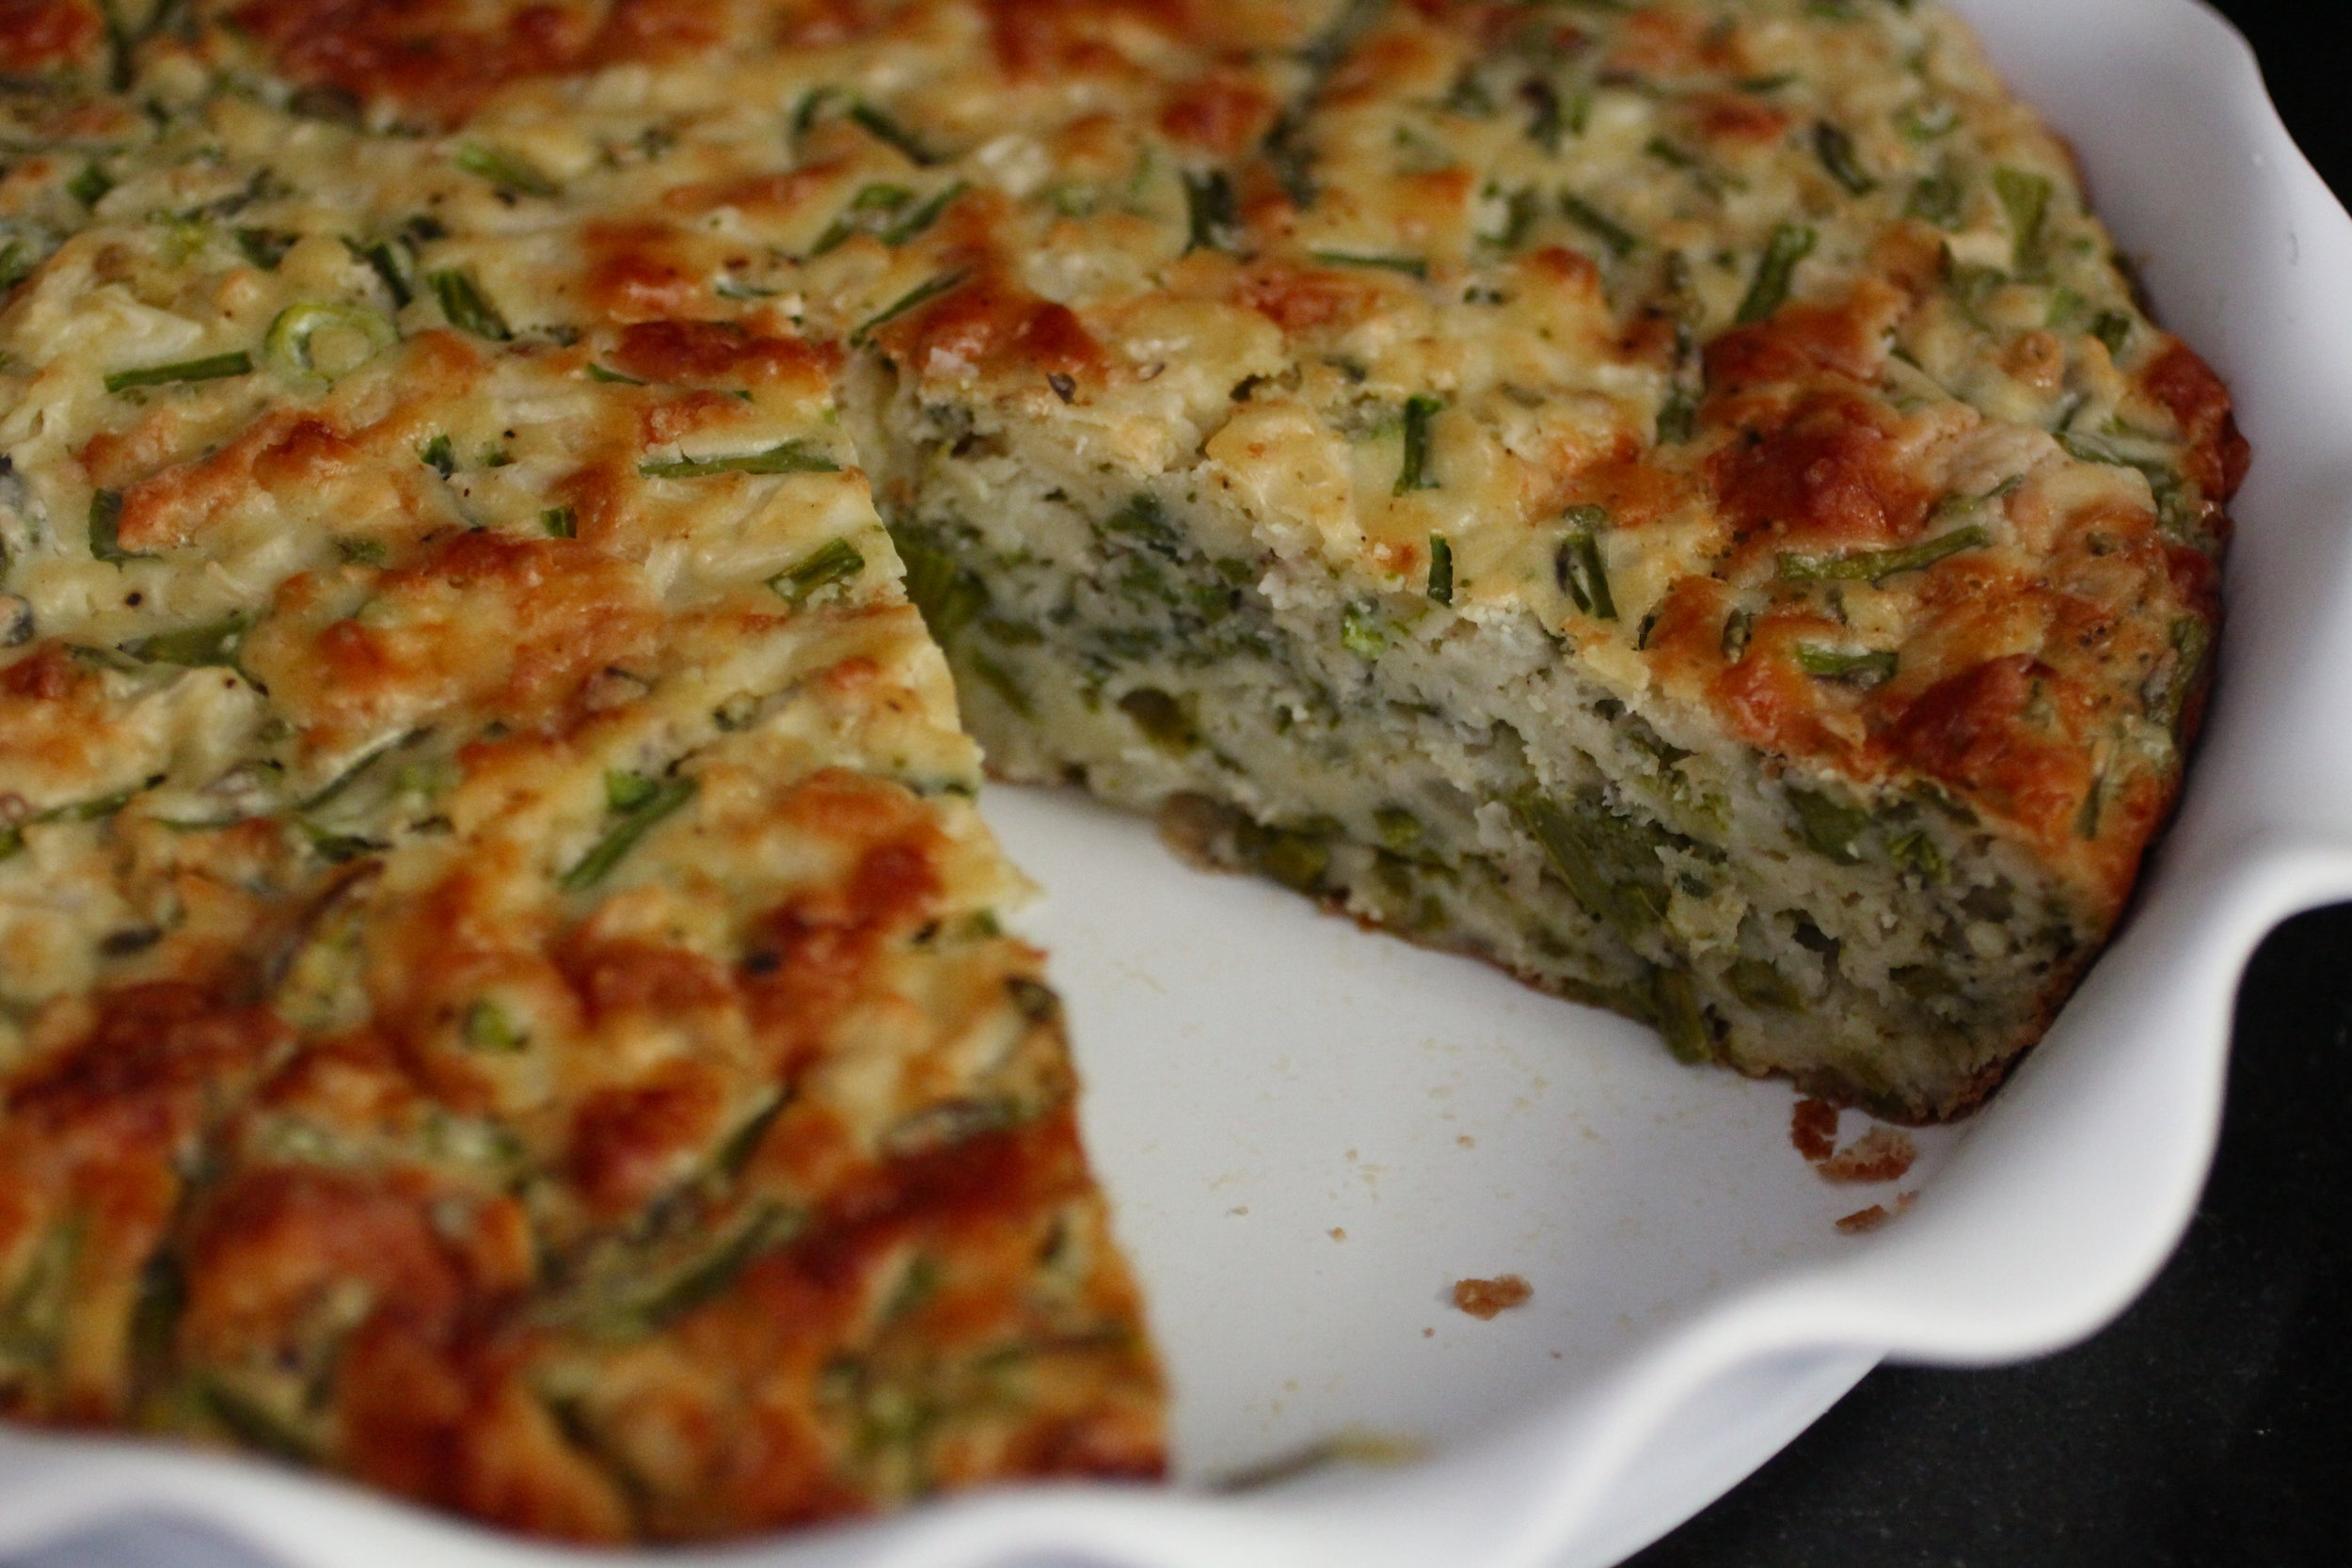 To make this crustless quiche, see my  squash pie recipe . Substitute 14-16 ounces of thin-speared spring asparagus (sliced crosswise) for the zucchini. Omit the nutmeg.